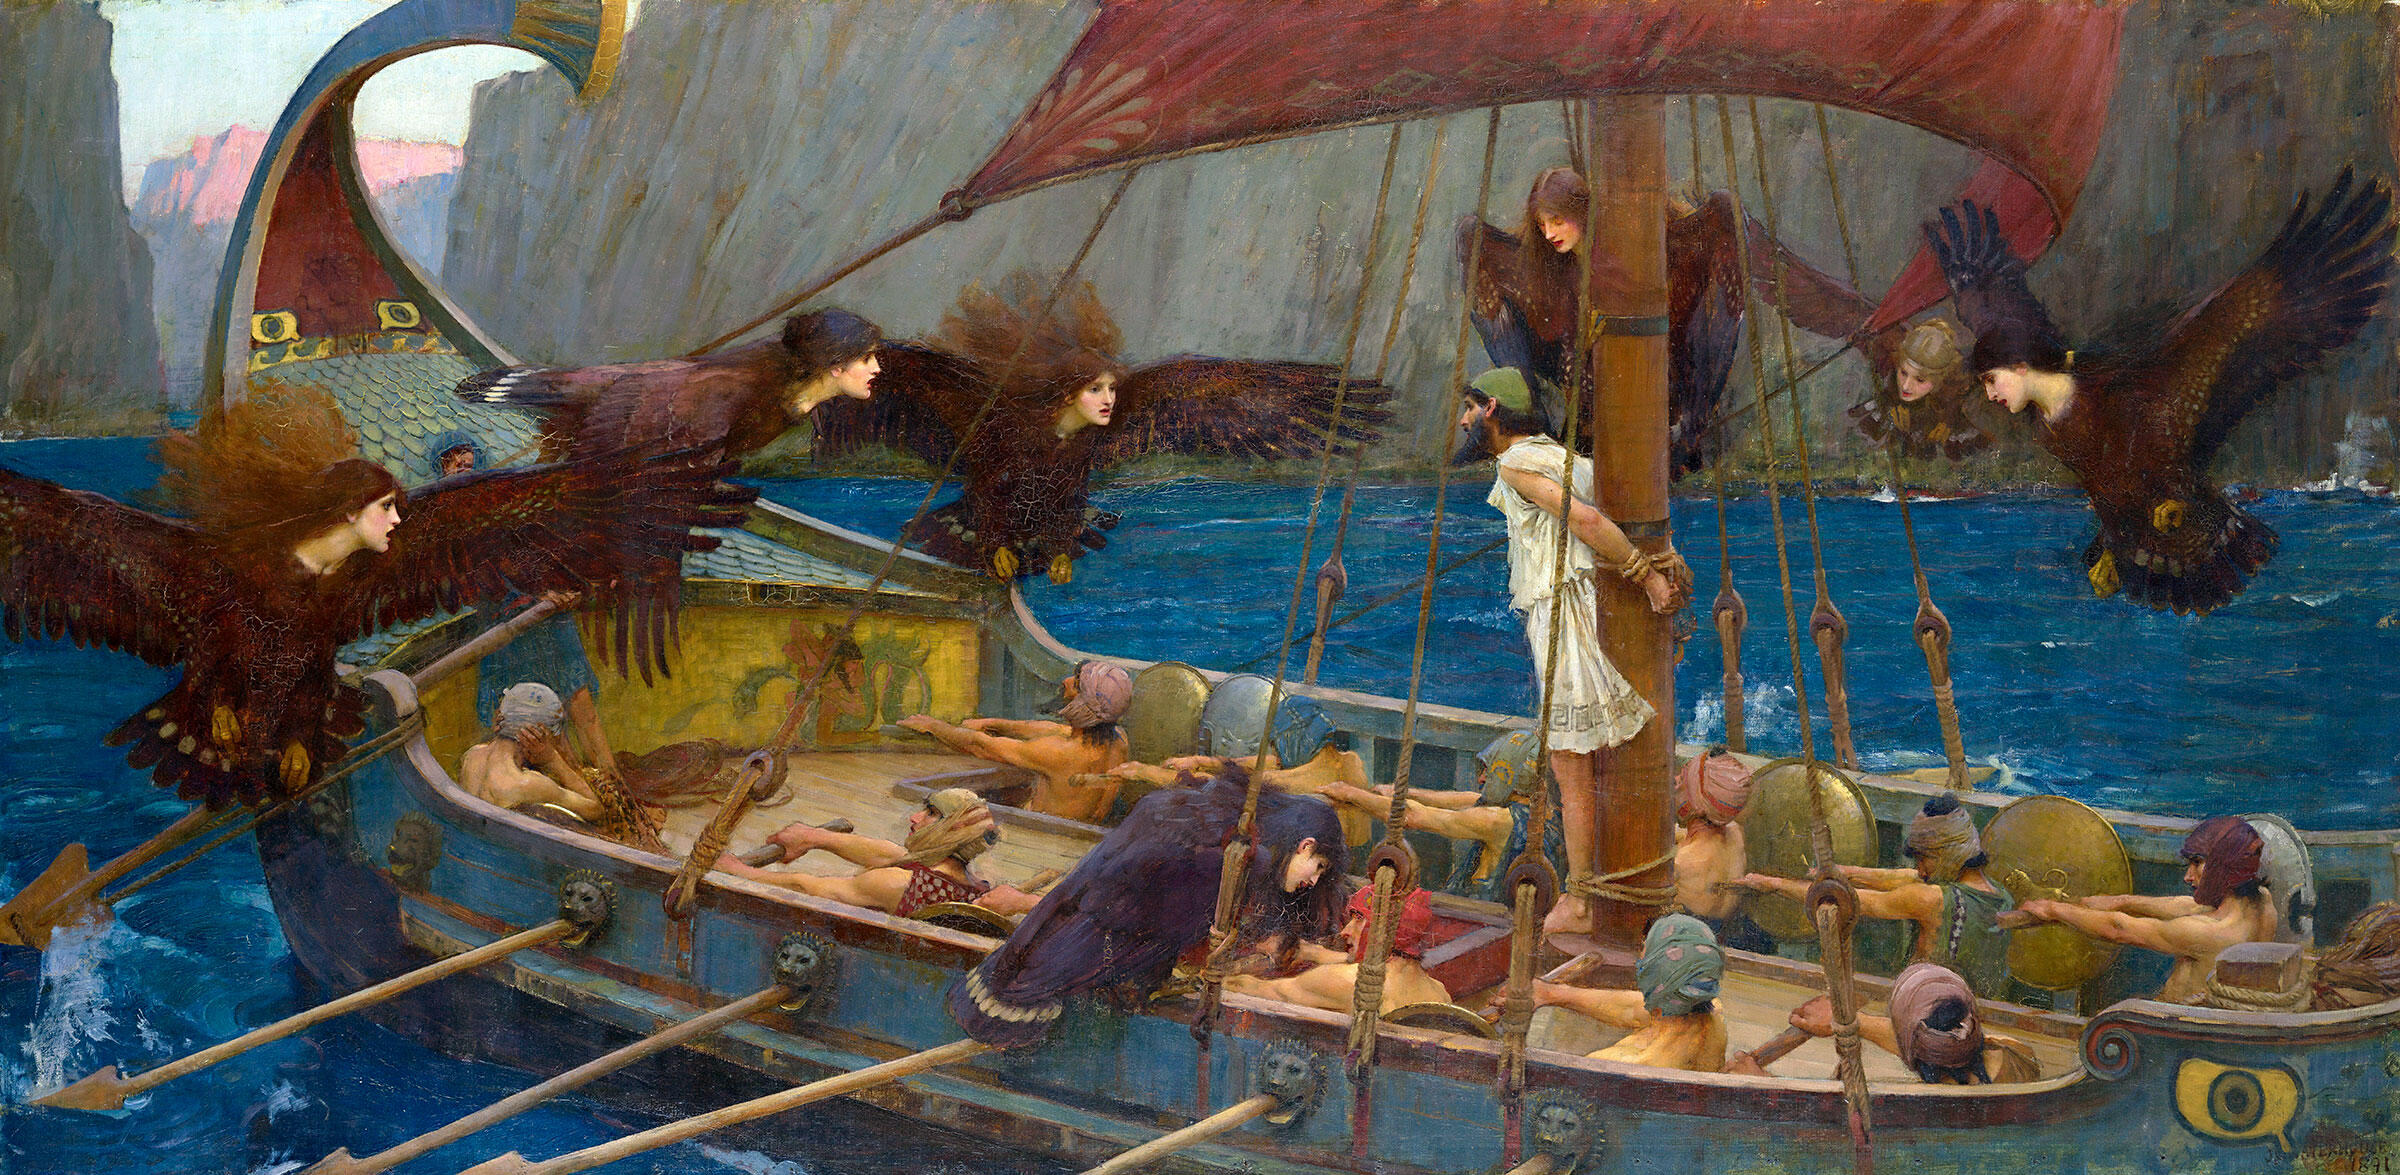 Odysseus and the Sirens (1891) shows the Greek warrior-king bound to his ship's mast as the Sirens' song calls to him. Painting: John William Waterhouse